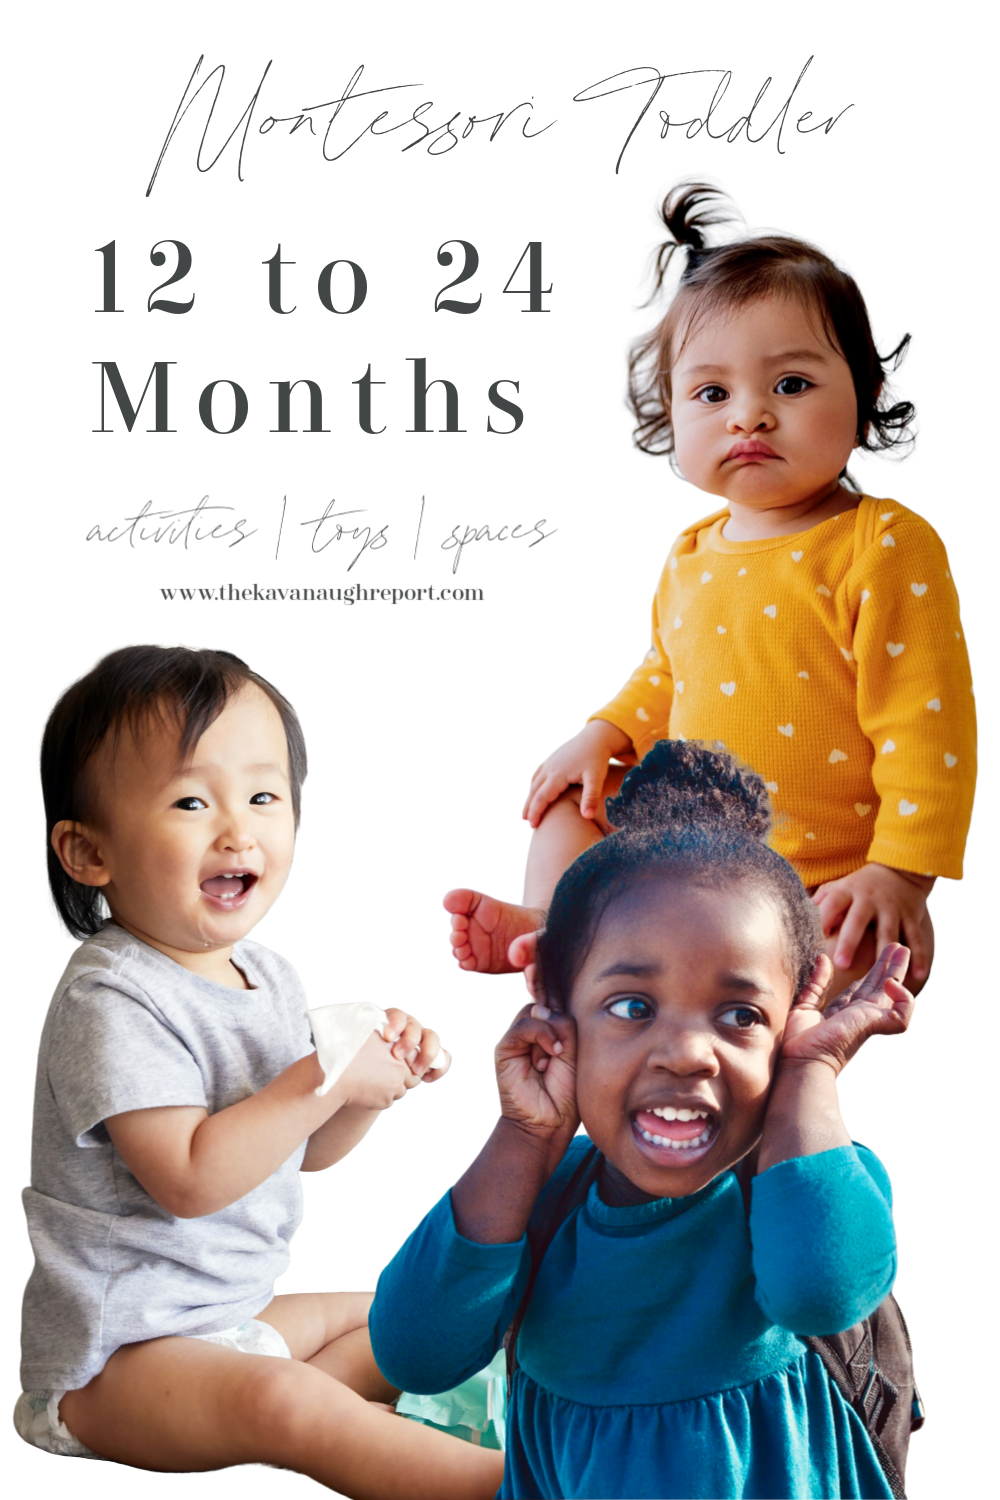 Montessori ideas and activities for young toddlers. These Montessori toddler ideas are prefect for toddlers between 12 months and 2-years-old.